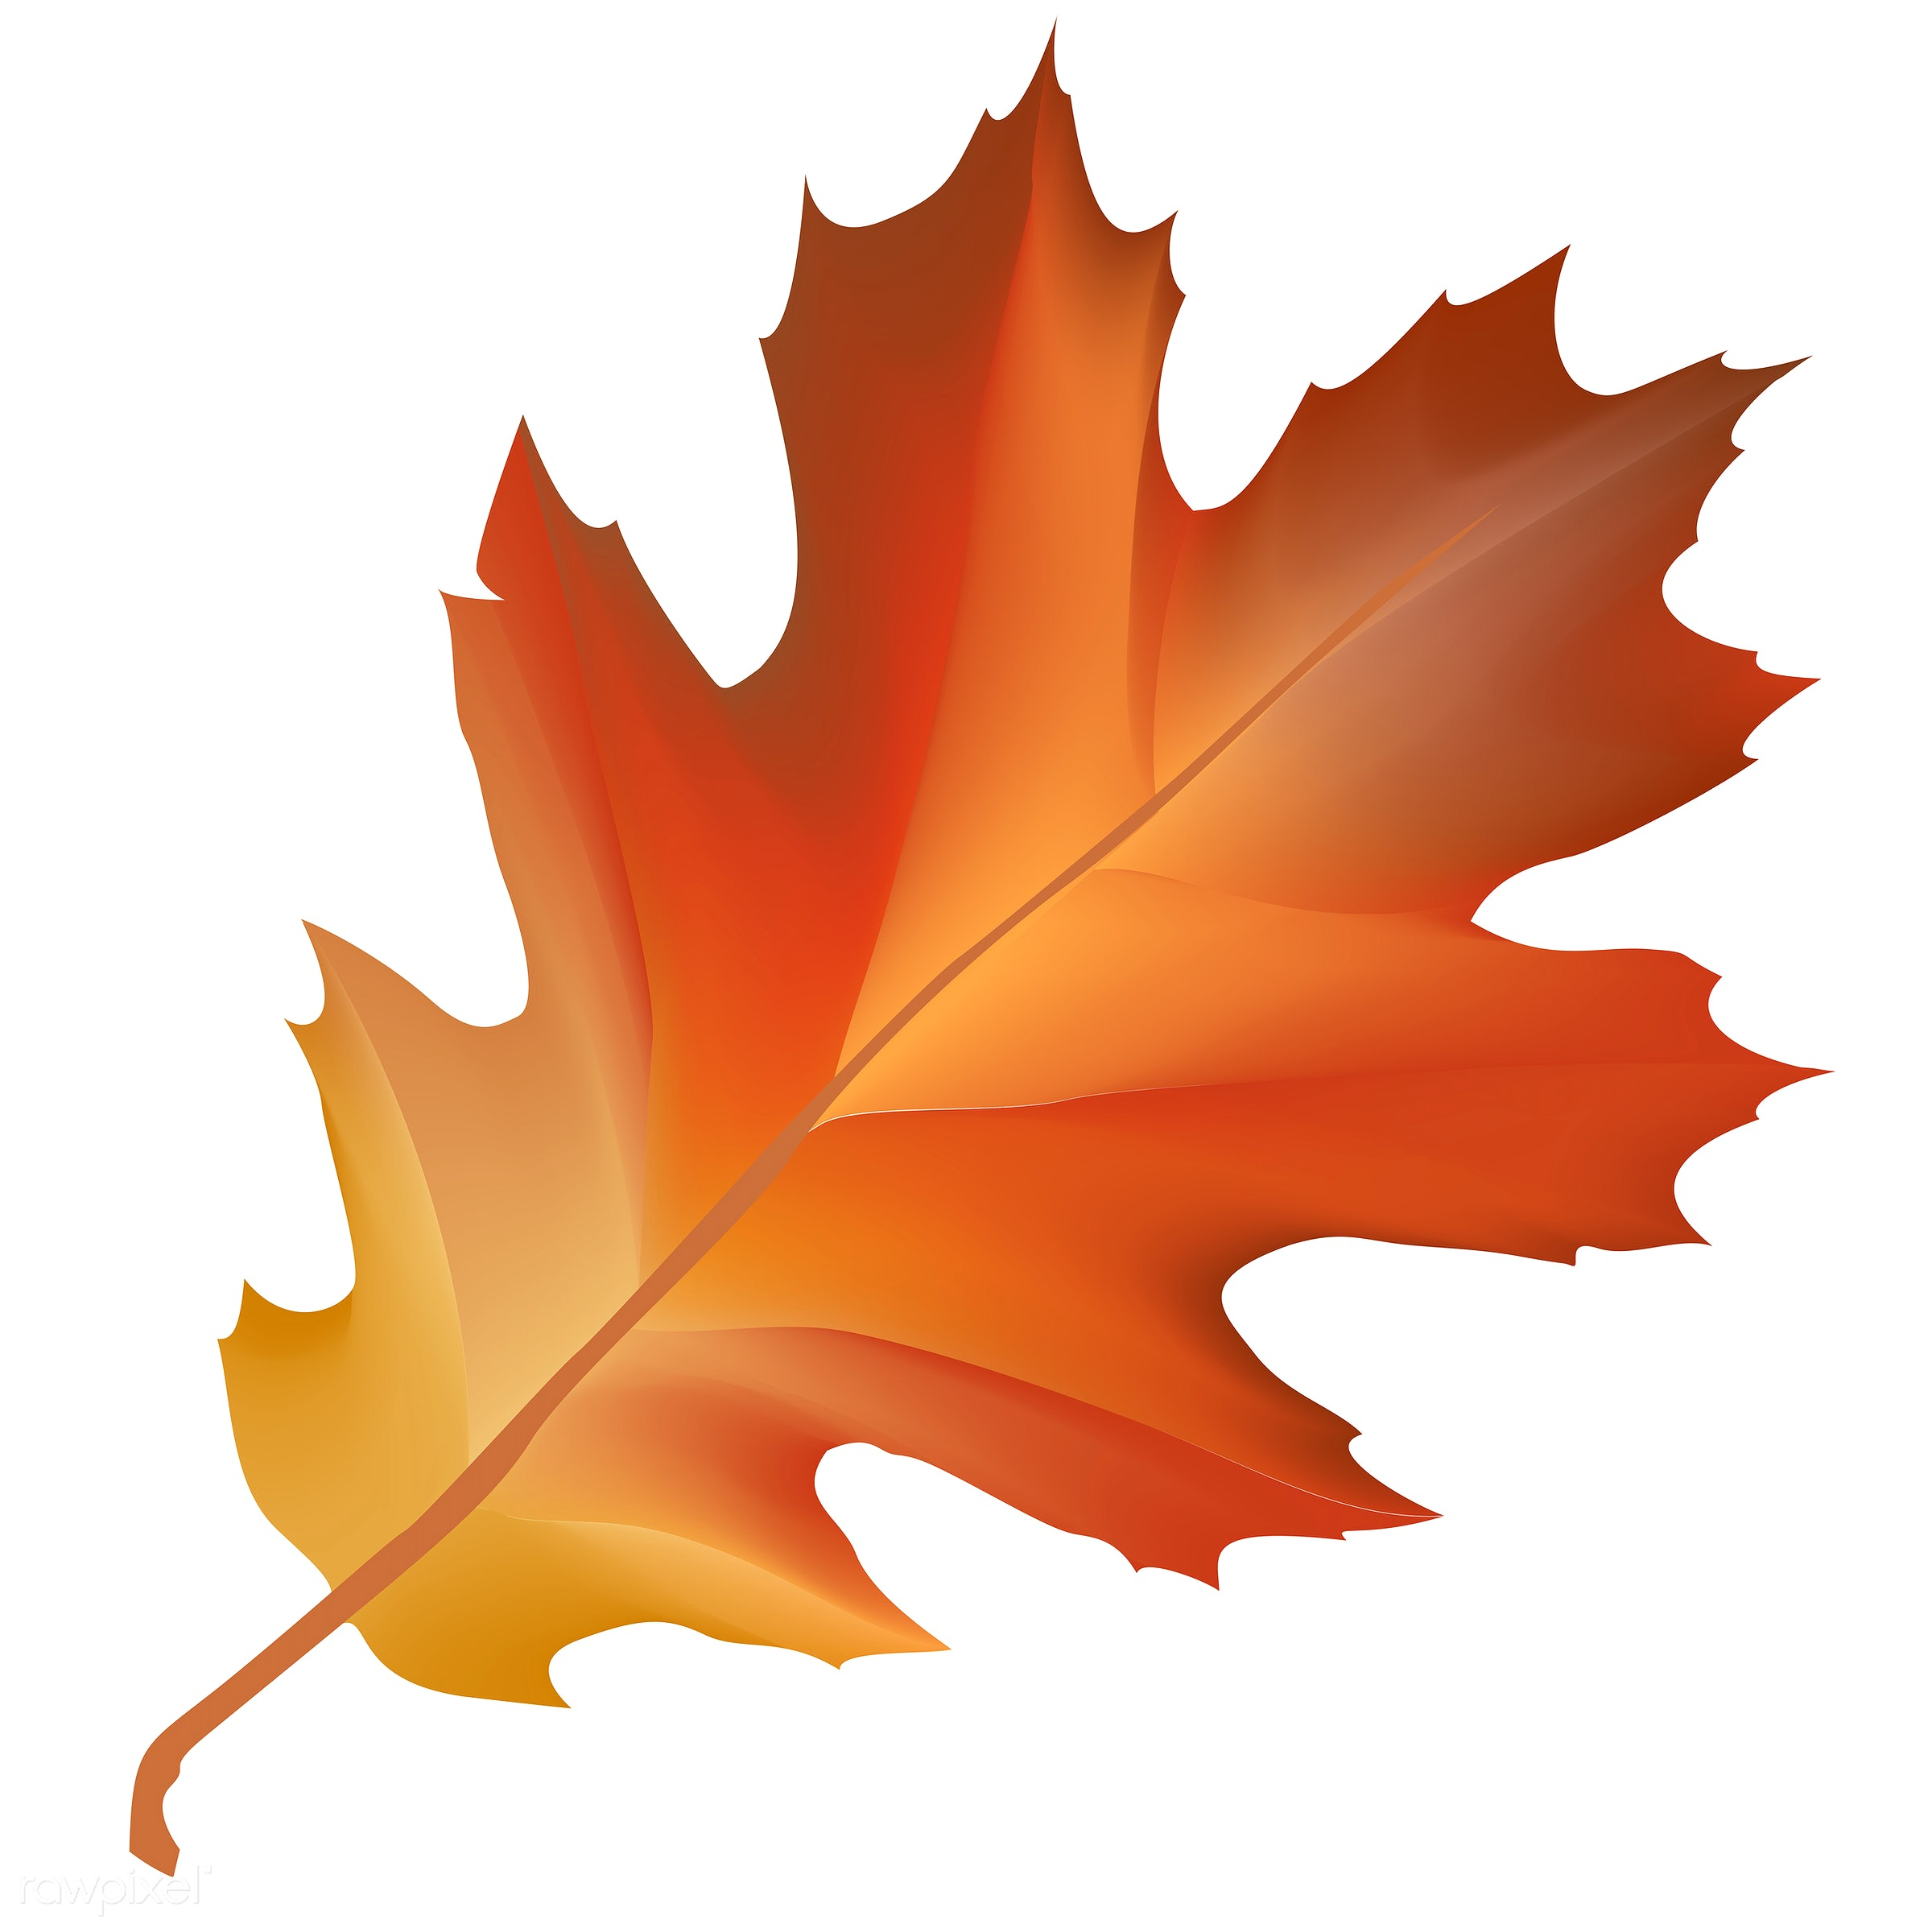 Illustration of leaf isolated on white background - autumn, celebration, crops, elements, fall, festival, graphic, harvest,...